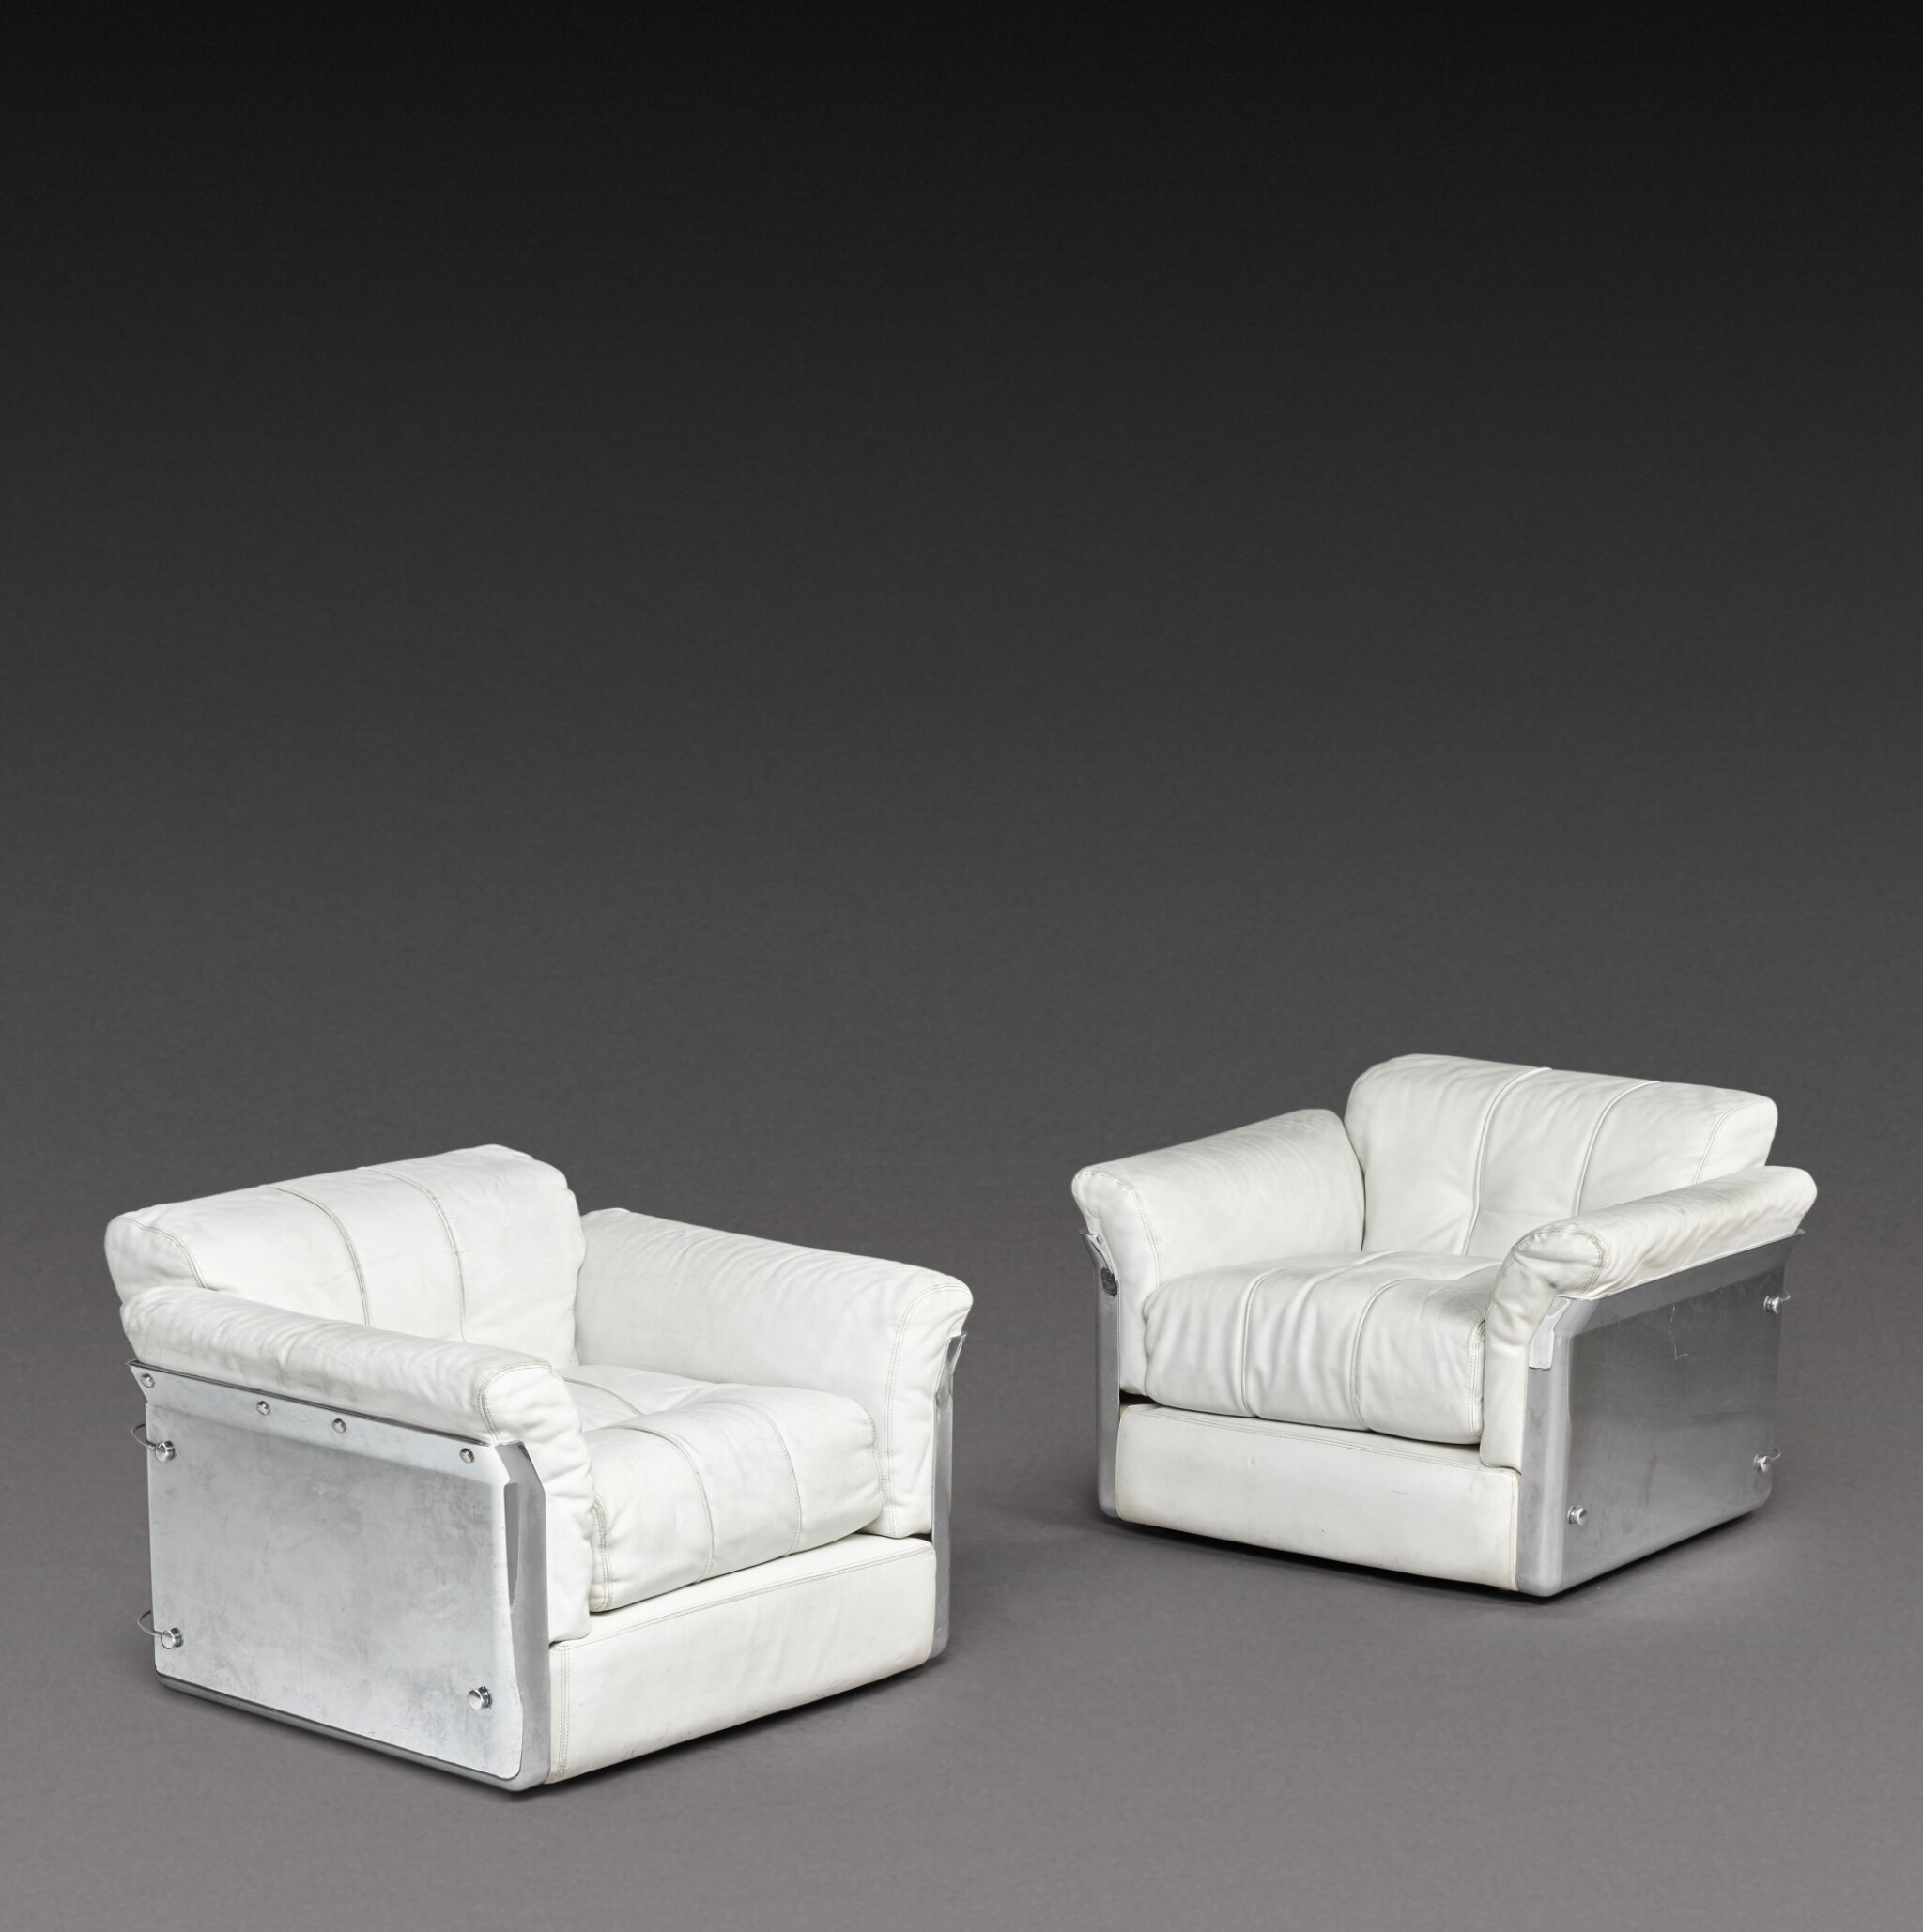 View 1 of Lot 190. A Pair of Larissa Armchairs.